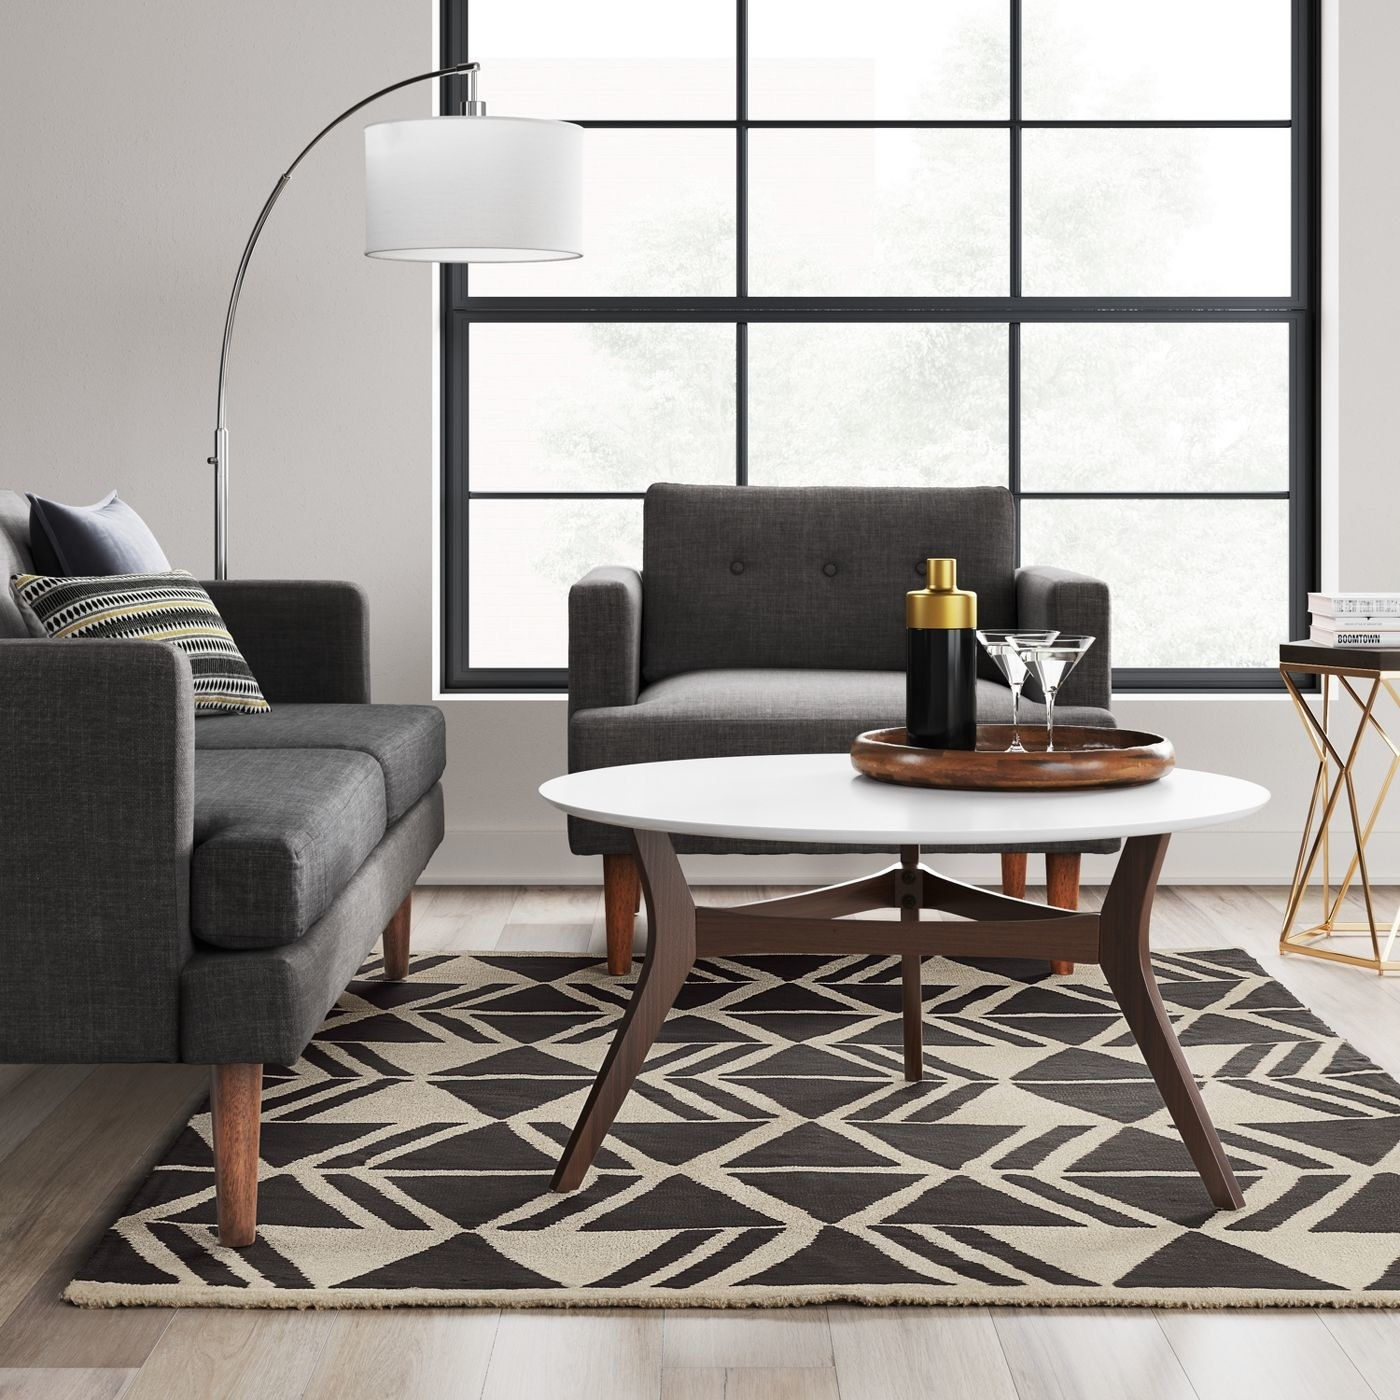 charcoal and cream rug with geometric pattern in a living room under a coffee table